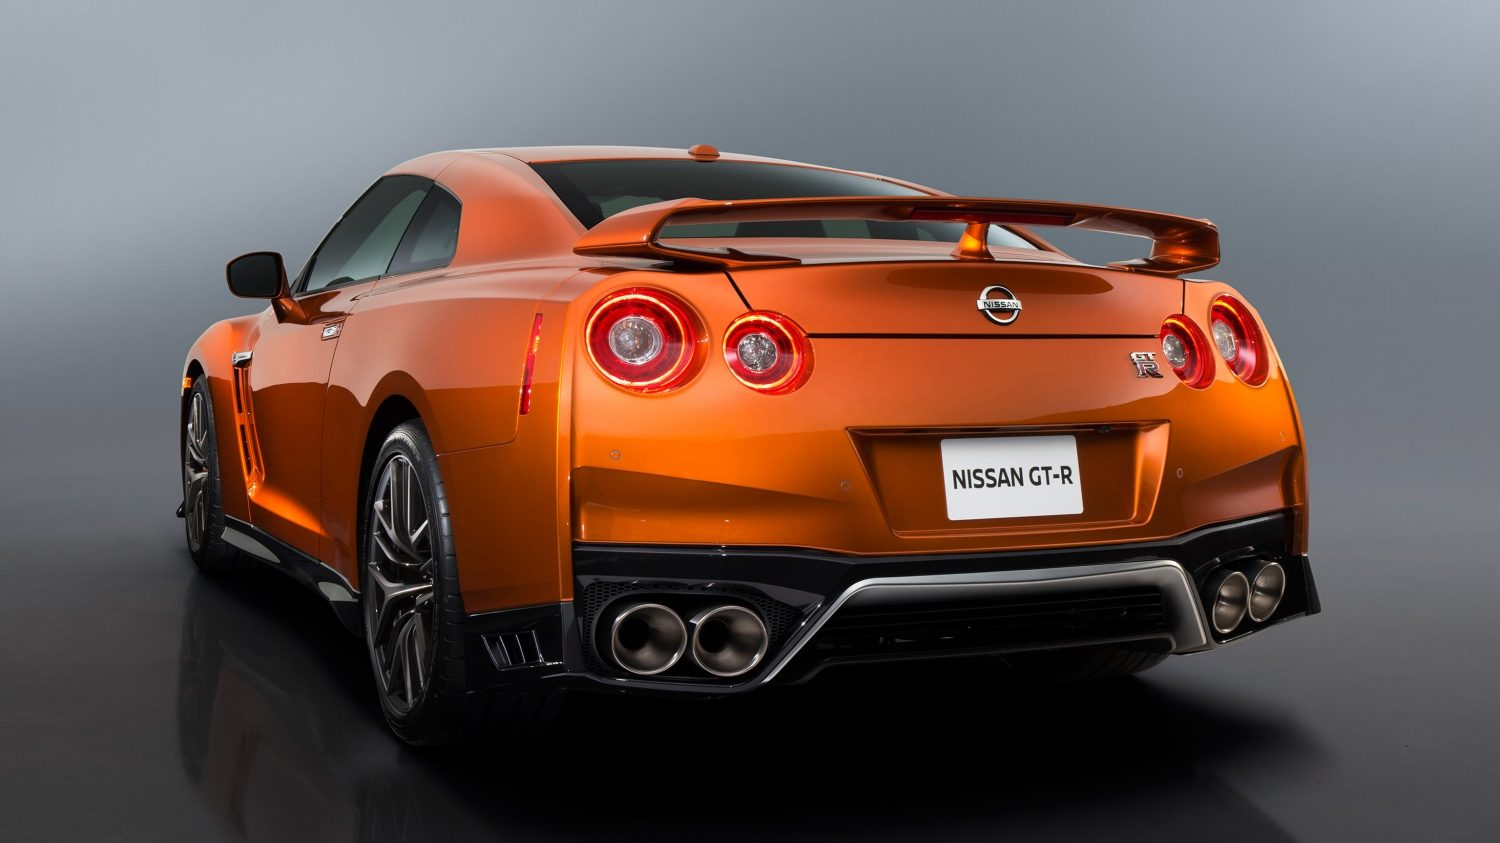 GTR in Orange rear view